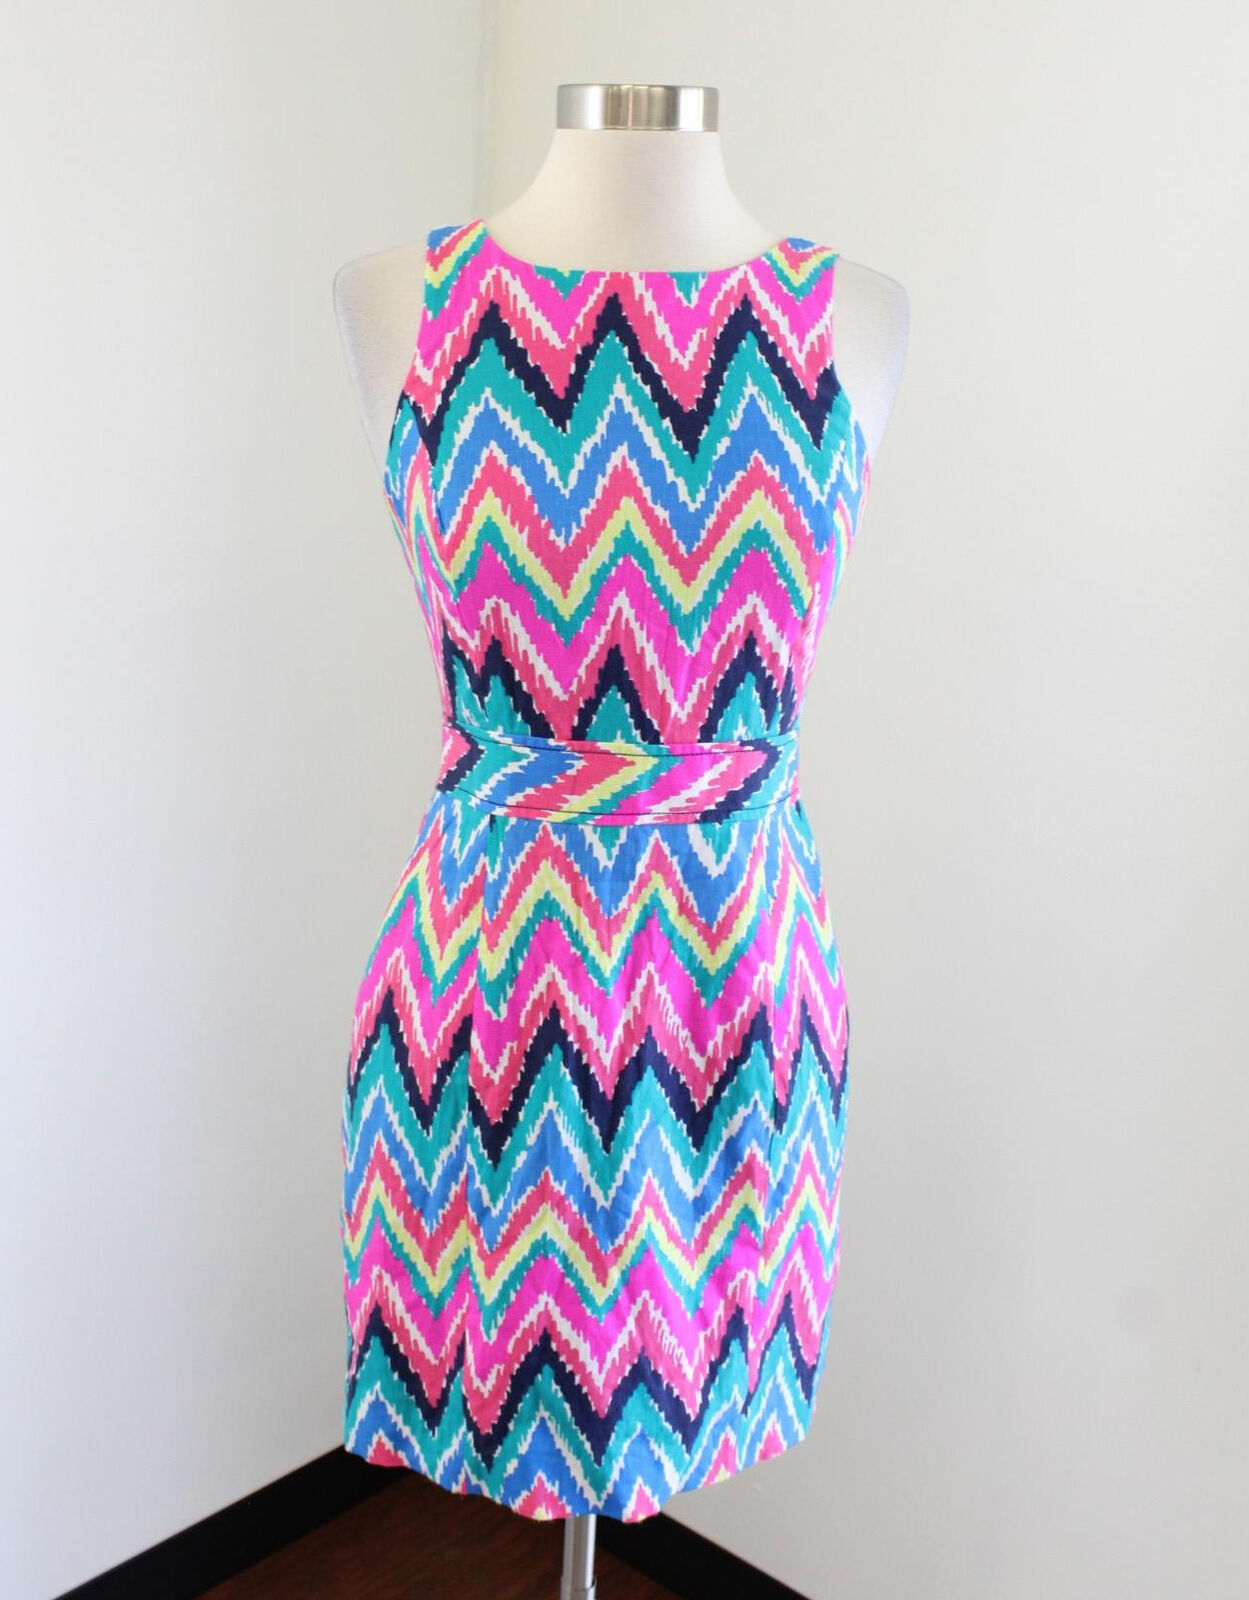 Lilly Pulitzer Kirkland Dress Multi Hearts a Flutter Chevron Print Size 00 Shift